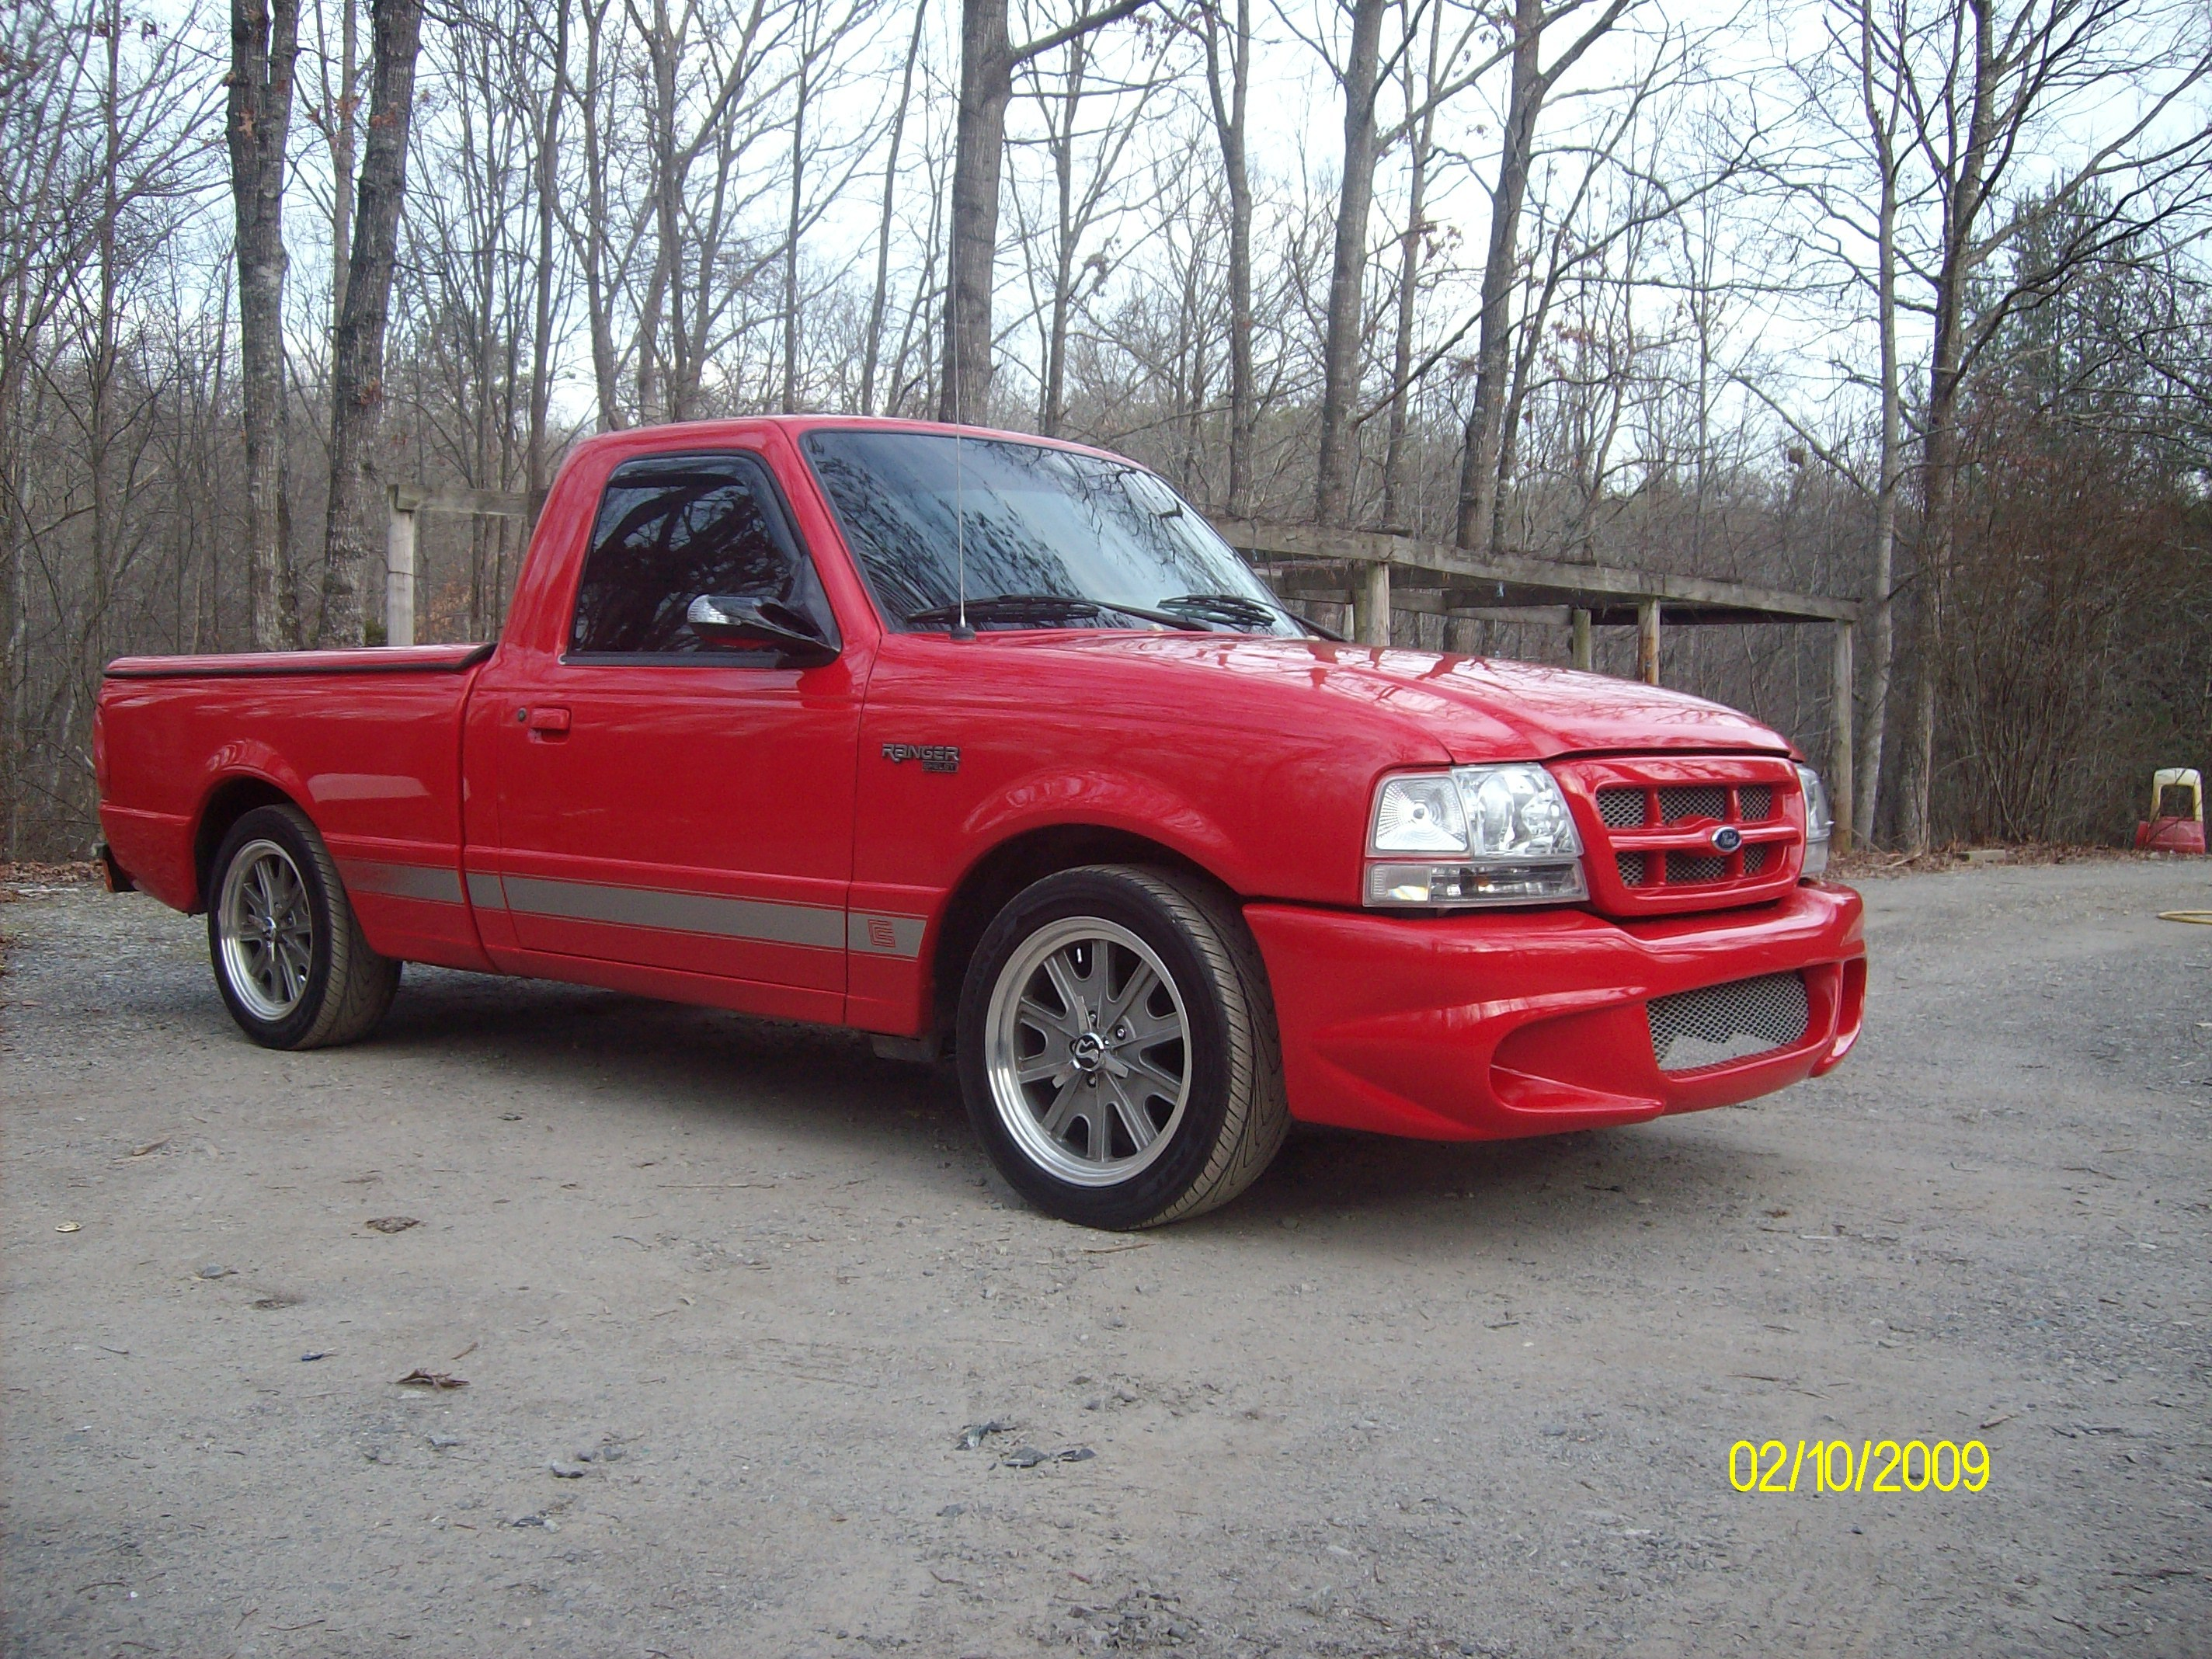 1999 Ford Ranger Regular Cab